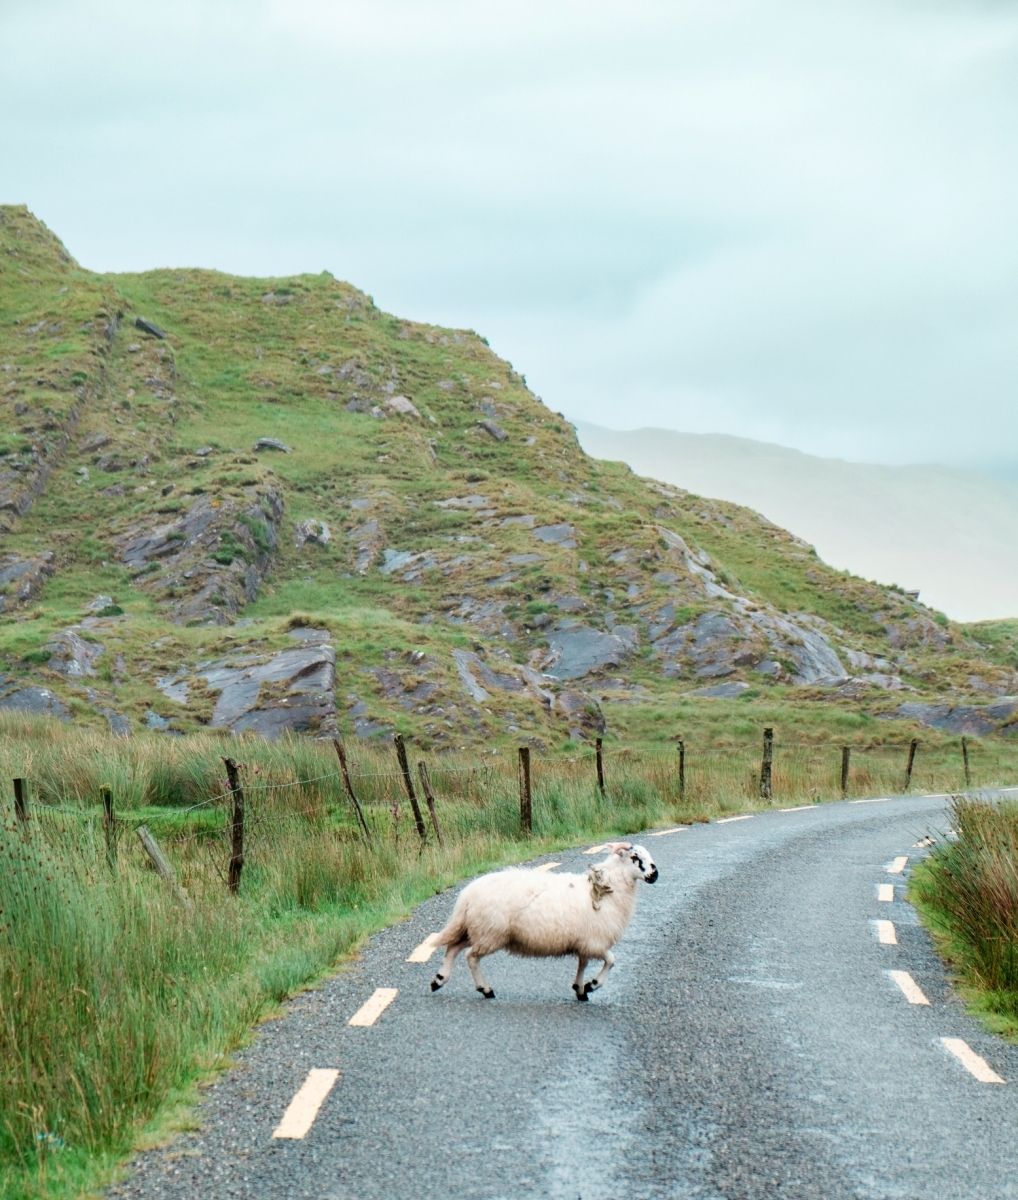 Traffic in County Kerry